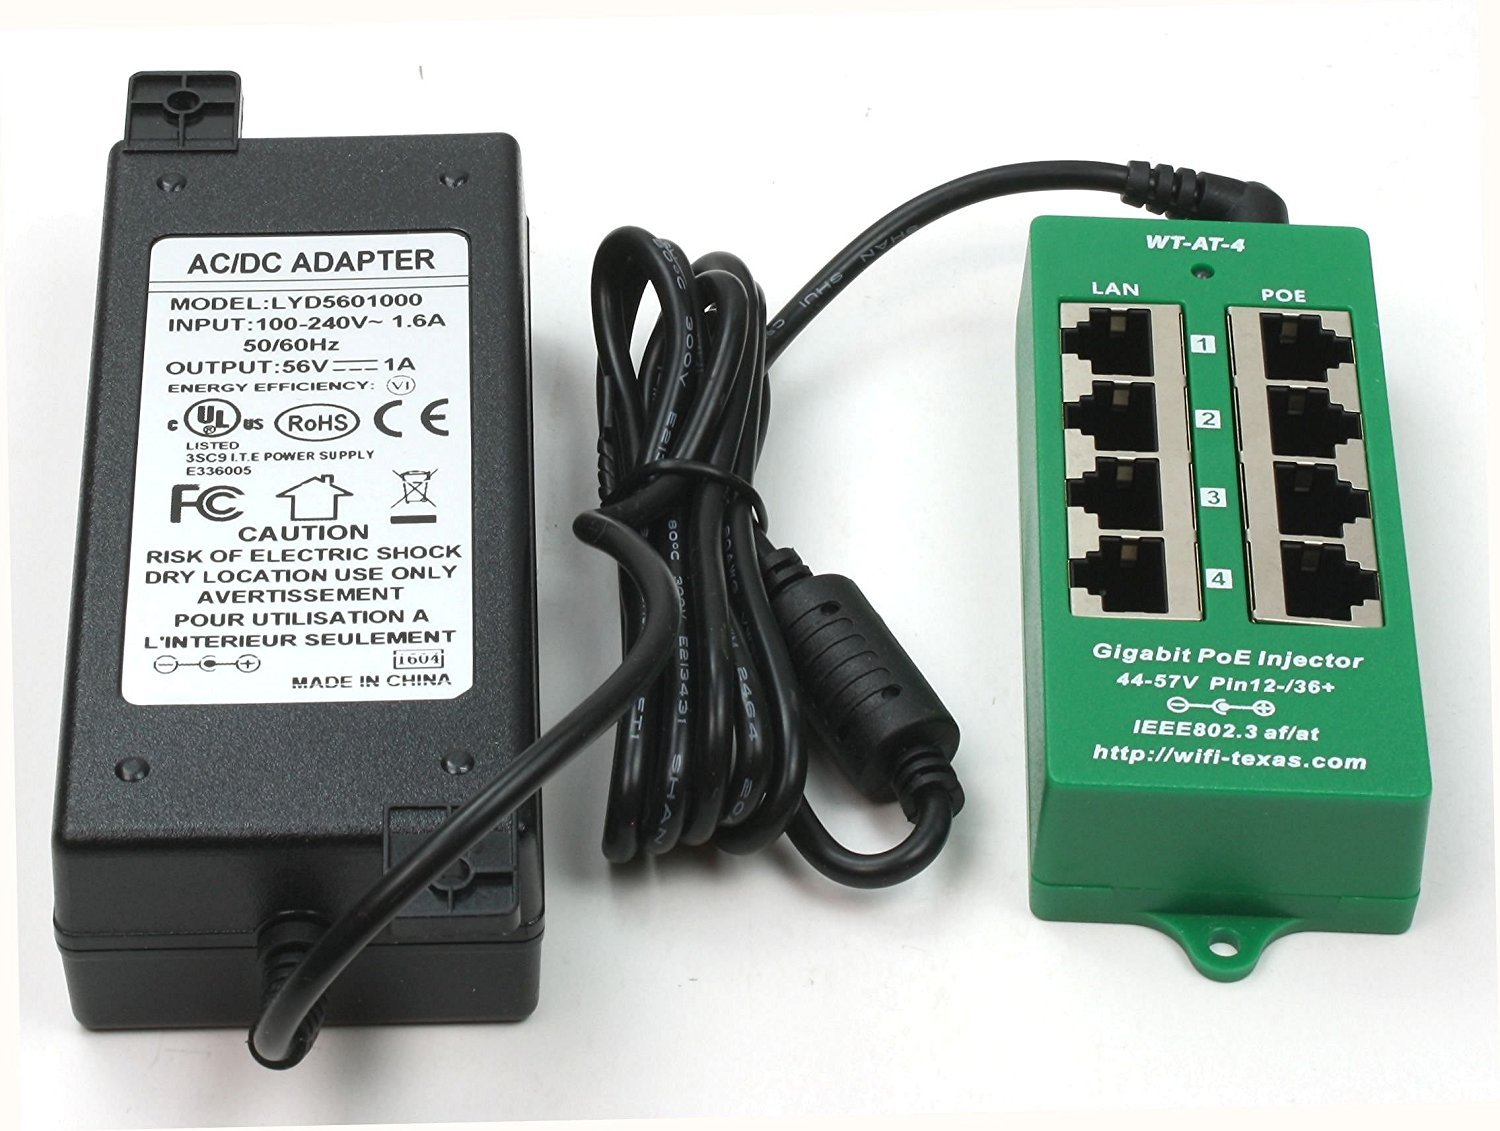 Wt At 4 56v60w 8023at Negotiating Gigabit Poe Port Ac Dc Power Supply 60w 24vdc 25a Active Tech Electronics Over Ethernet Injector For Cameras Ip Phones Wifi Access Points